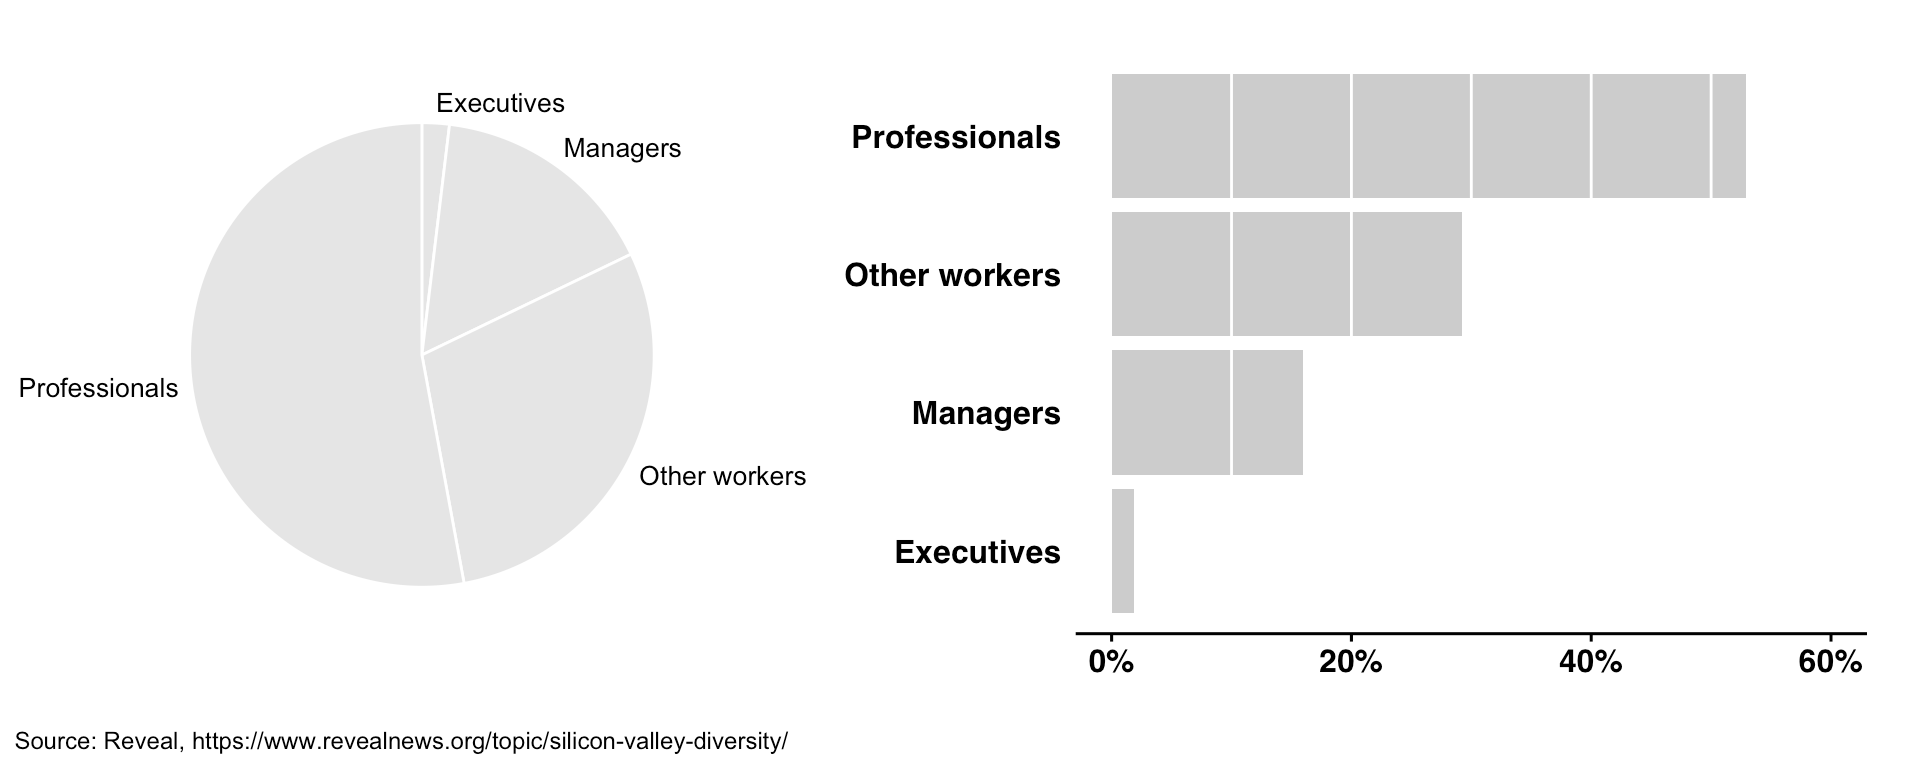 Bar chart vs. pie chart comparing job categories of employees in Silicon Valley companies